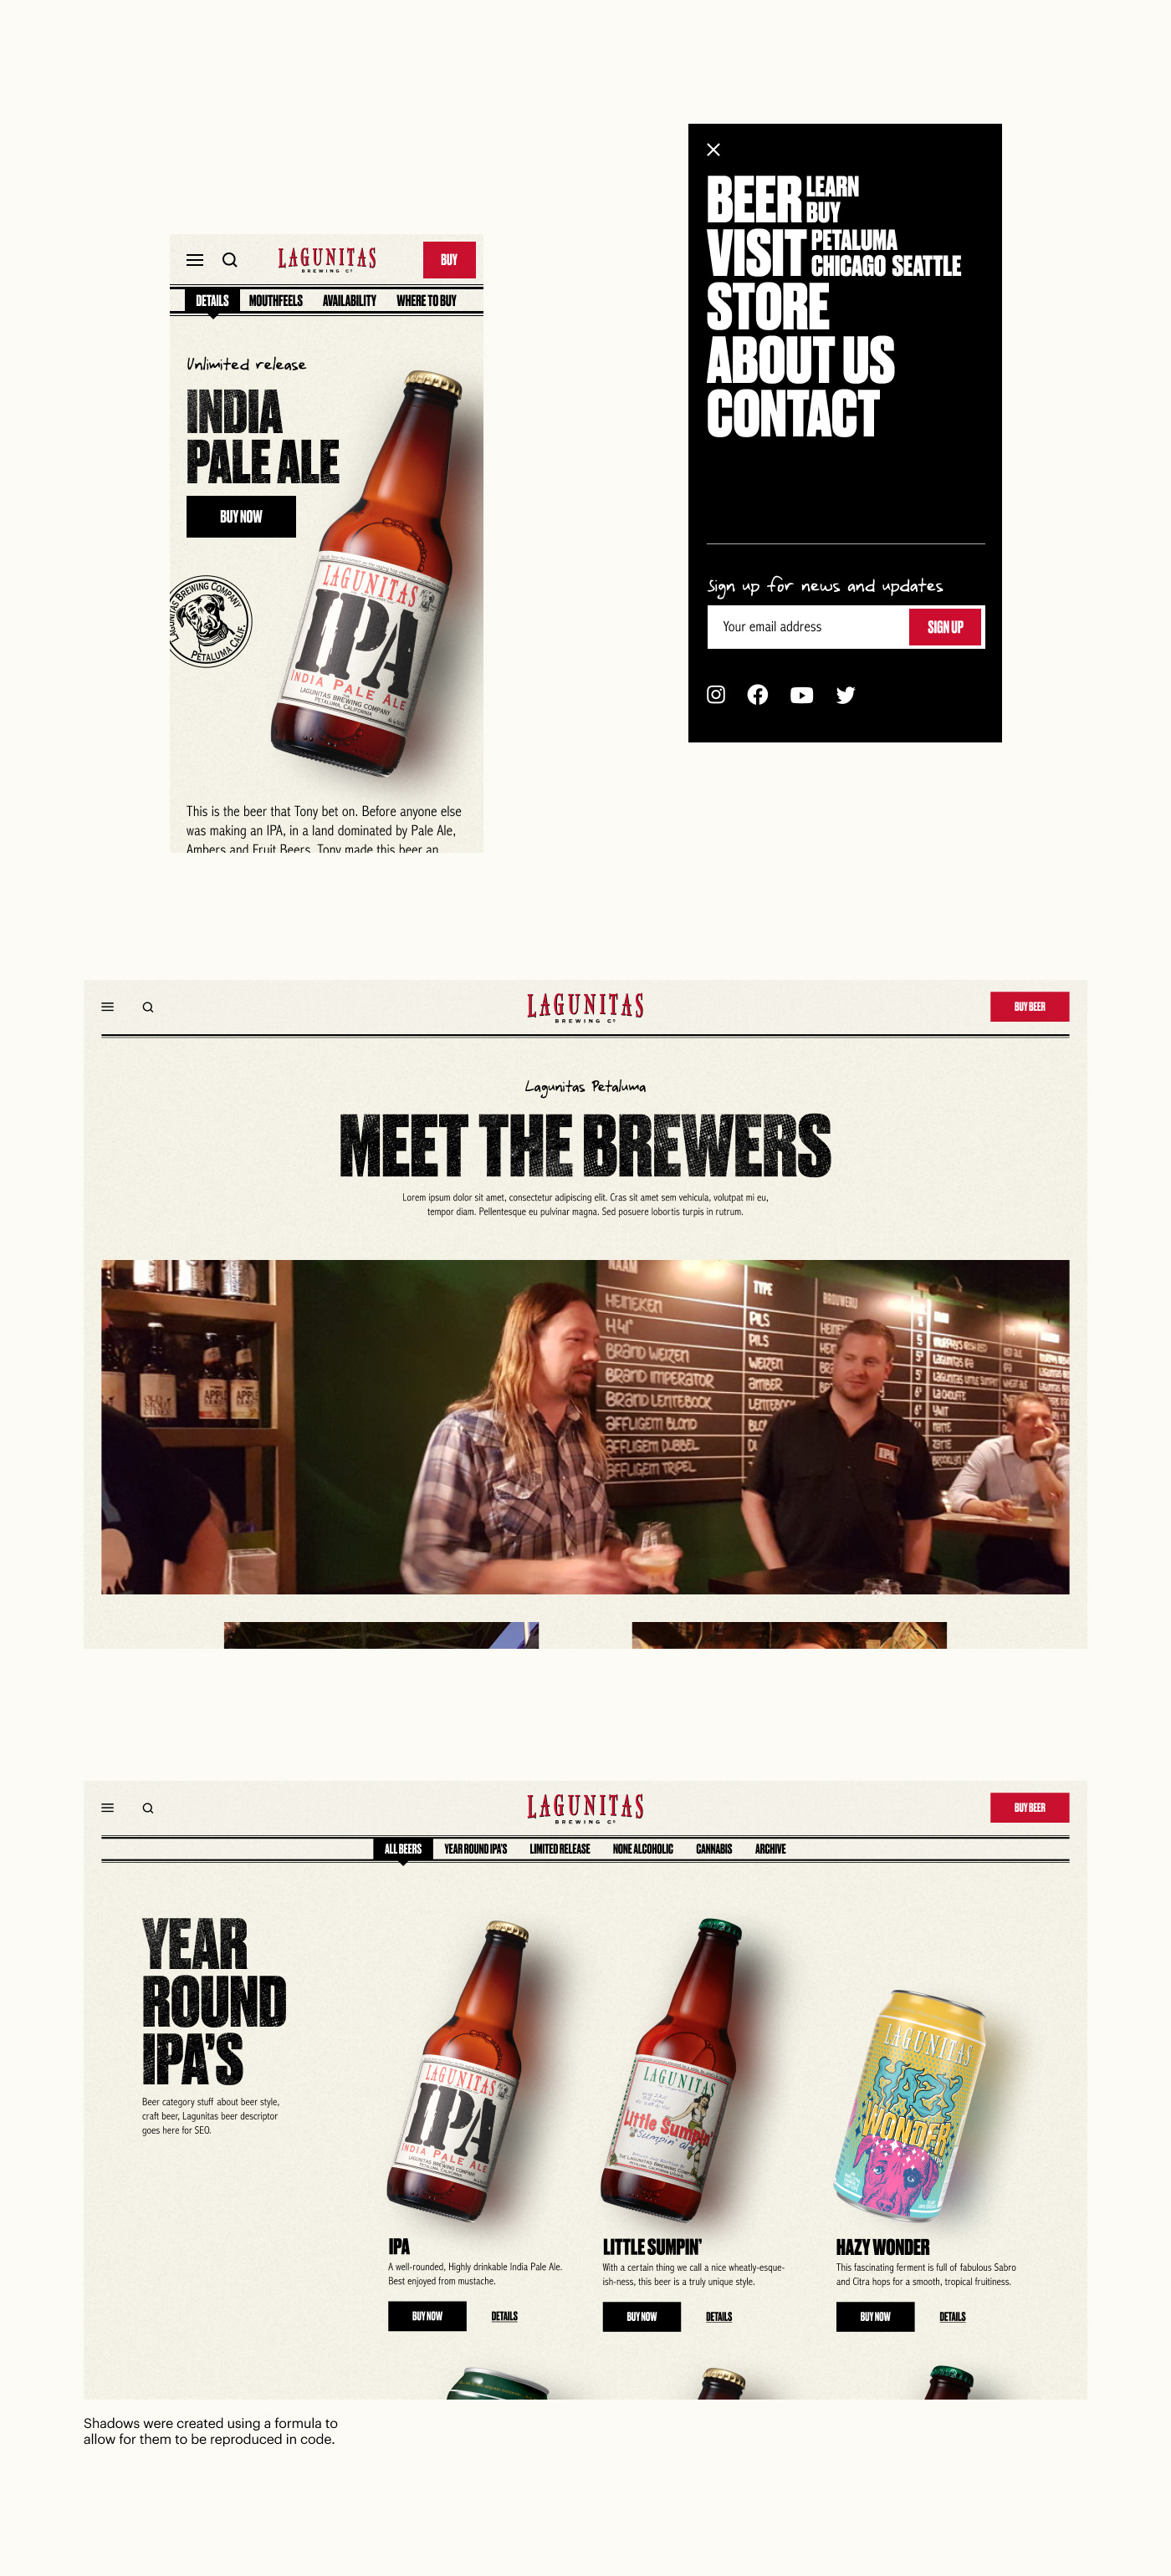 A beer detail page with info designed for mobile. Below an about page with a photo of a brewmaster.